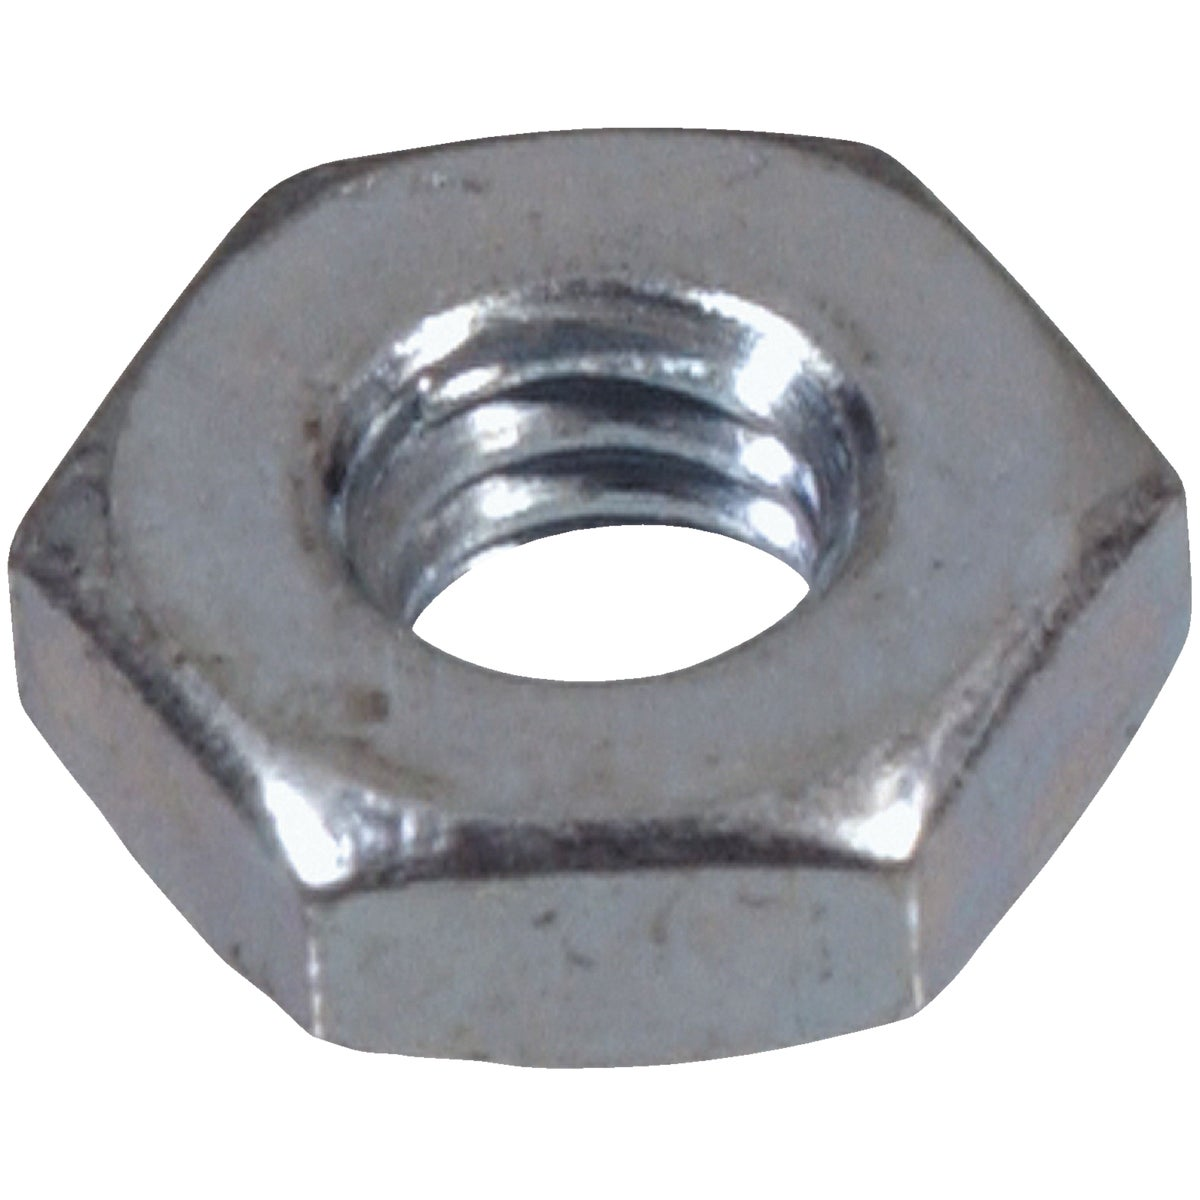 10-32 HEX MACH SCREW NUT - 140024 by Hillman Fastener